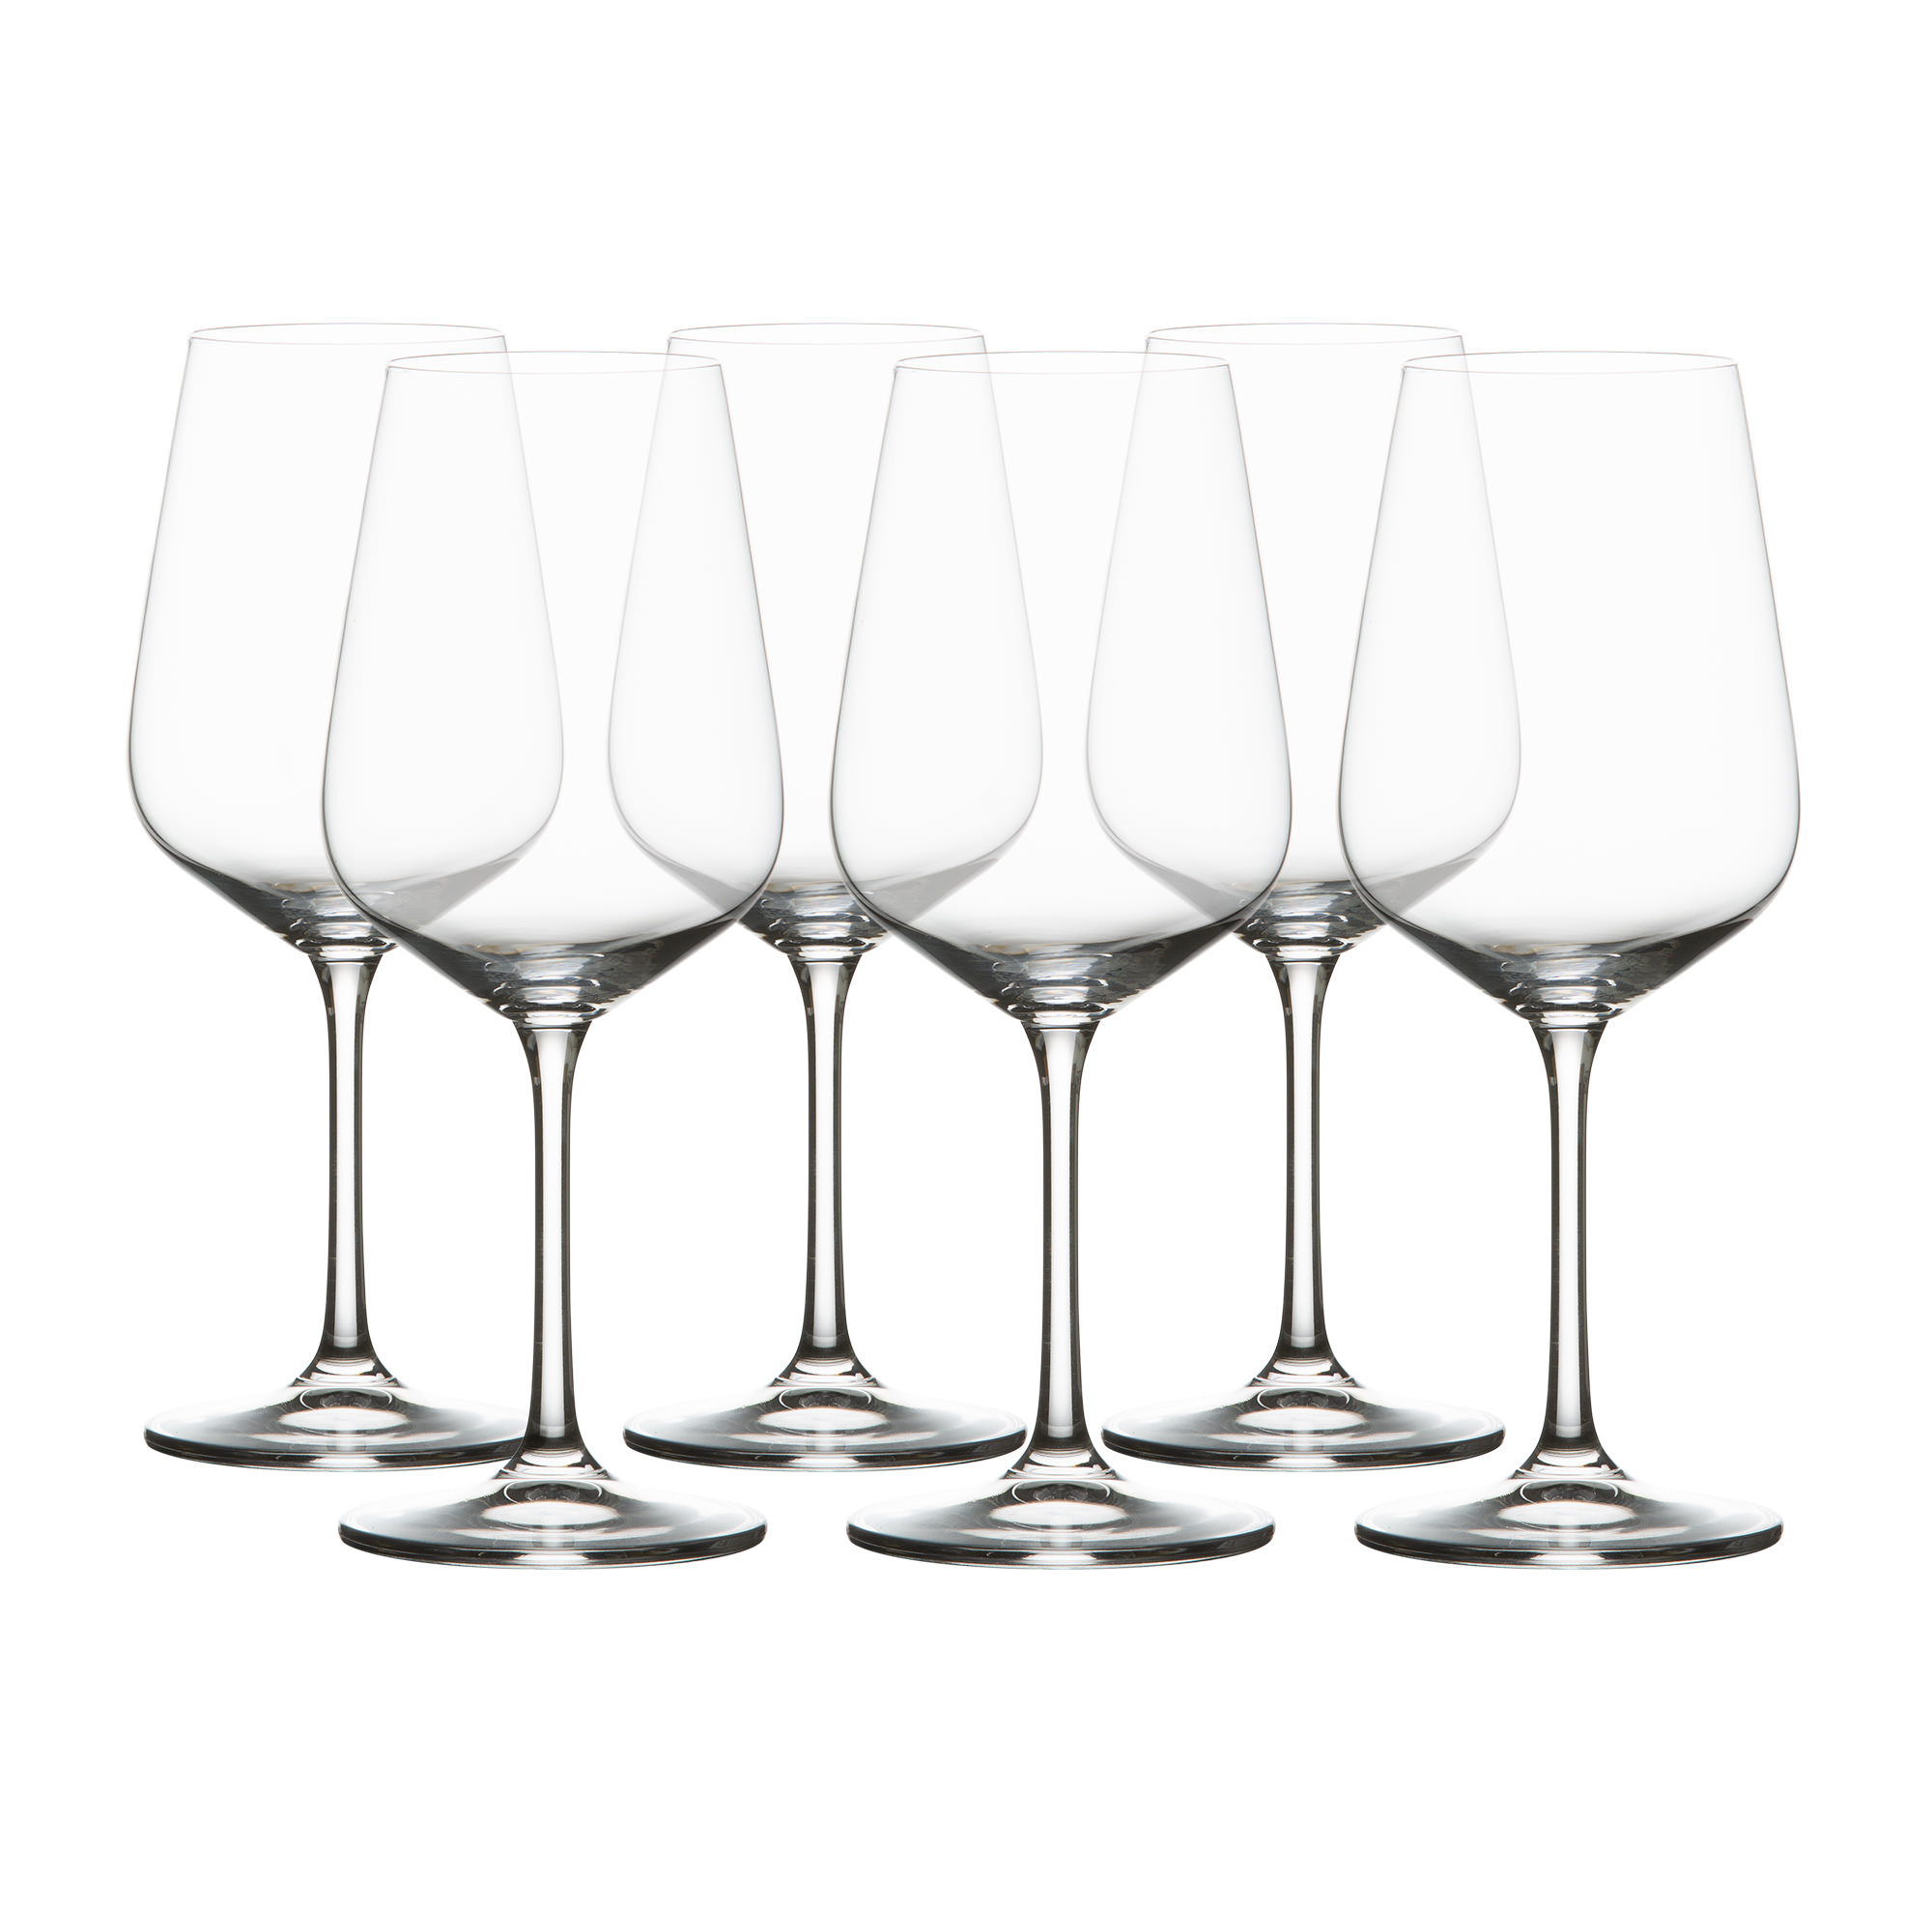 Salisbury & Co Sublime White Wine Glass Set 450ml 6pc